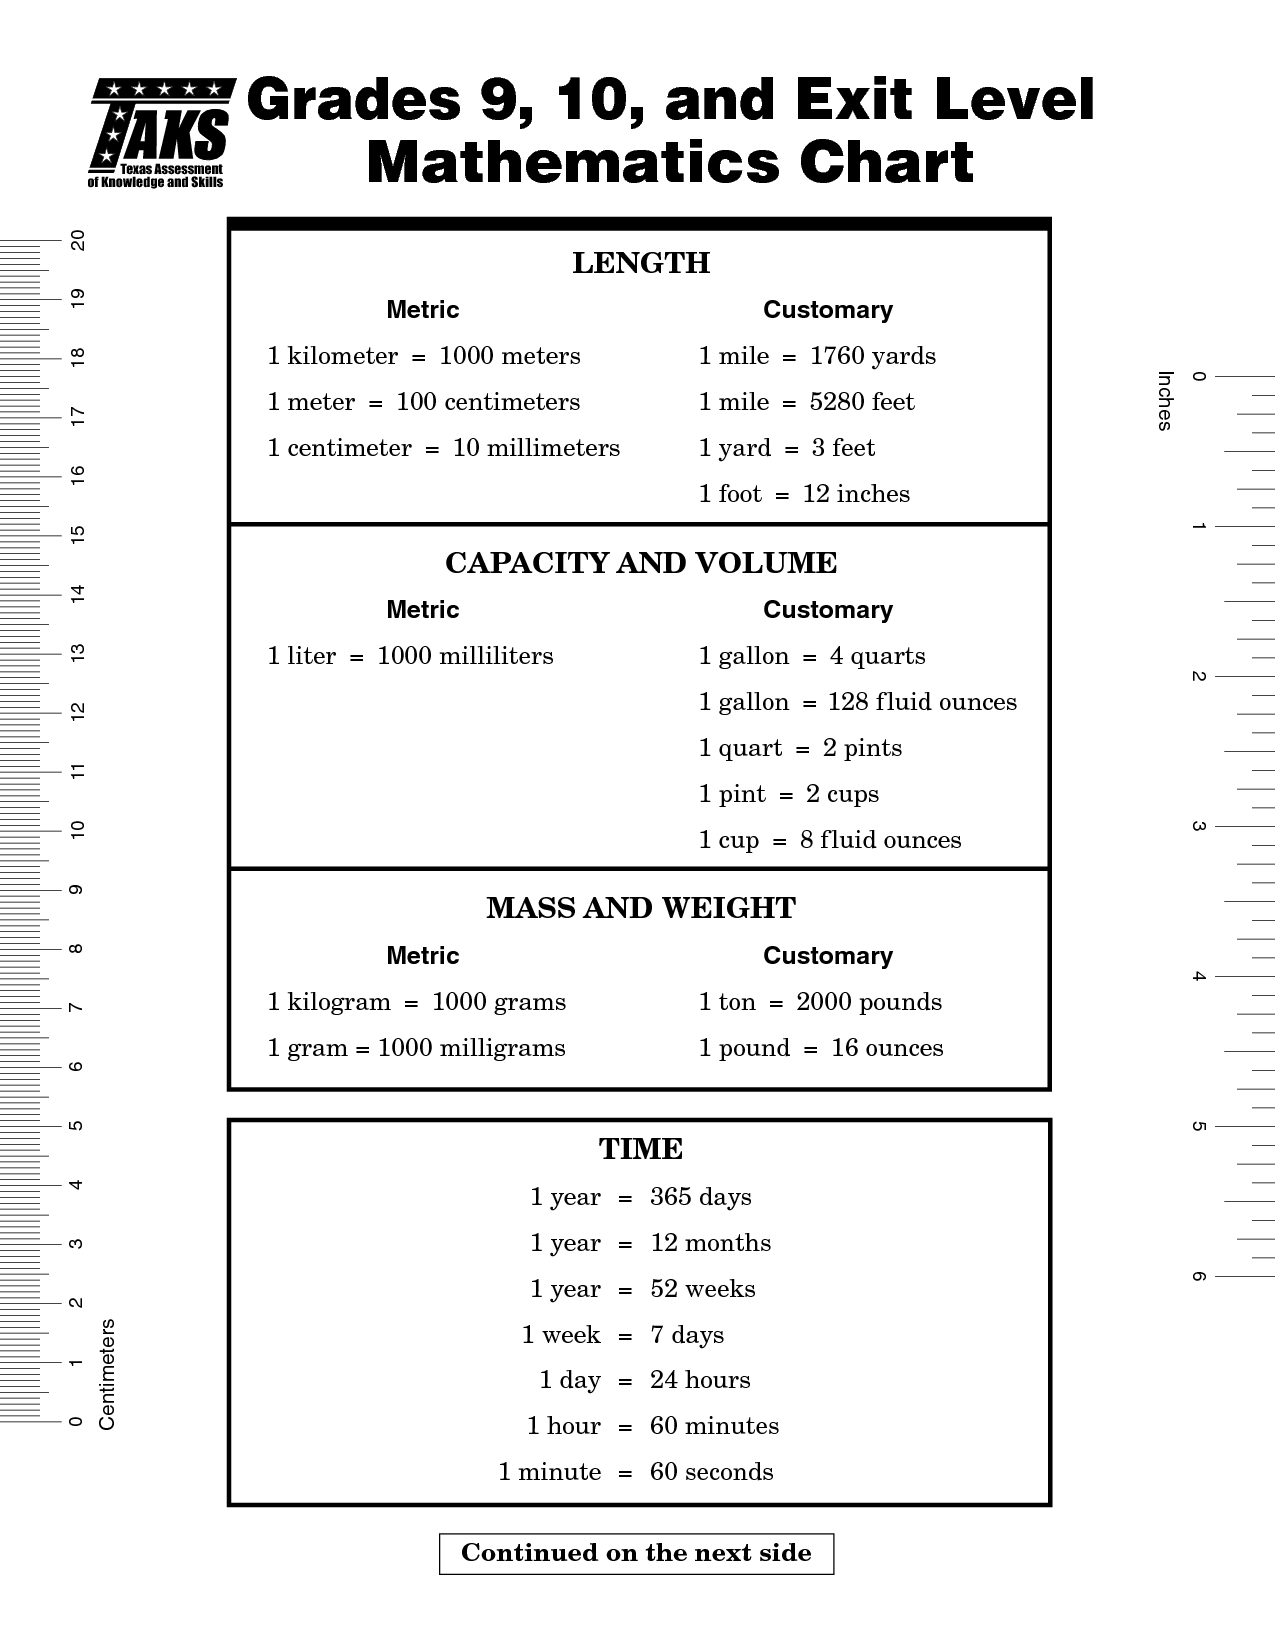 17 Best Images Of 9th Grade Mathematics Worksheets